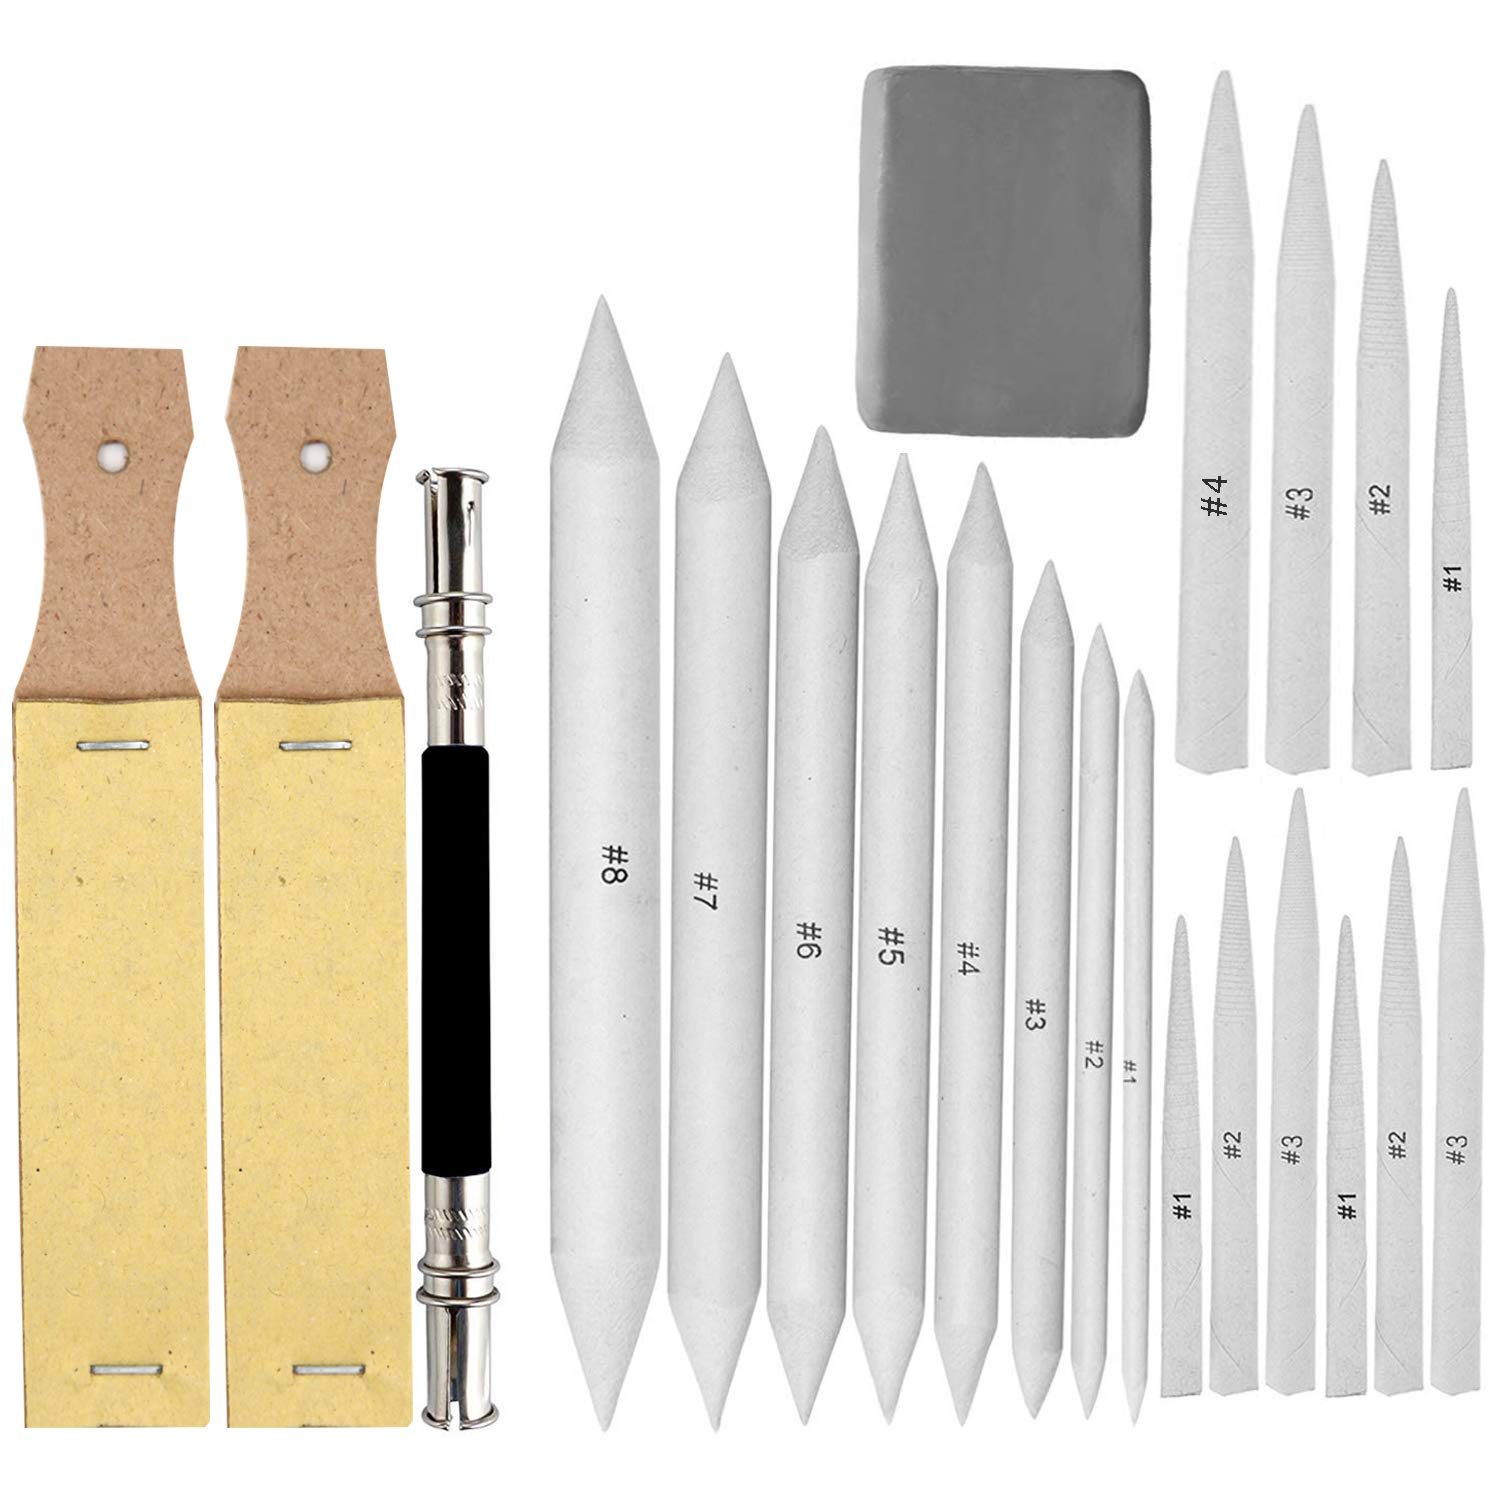 EuTengHao 22 Pieces Blending Stumps and Tortillions Set with 2 Sandpaper Pencil Sharpener, 1 Pencil Extension Tool and 1 Eraser for Student Sketch Drawing Accessories